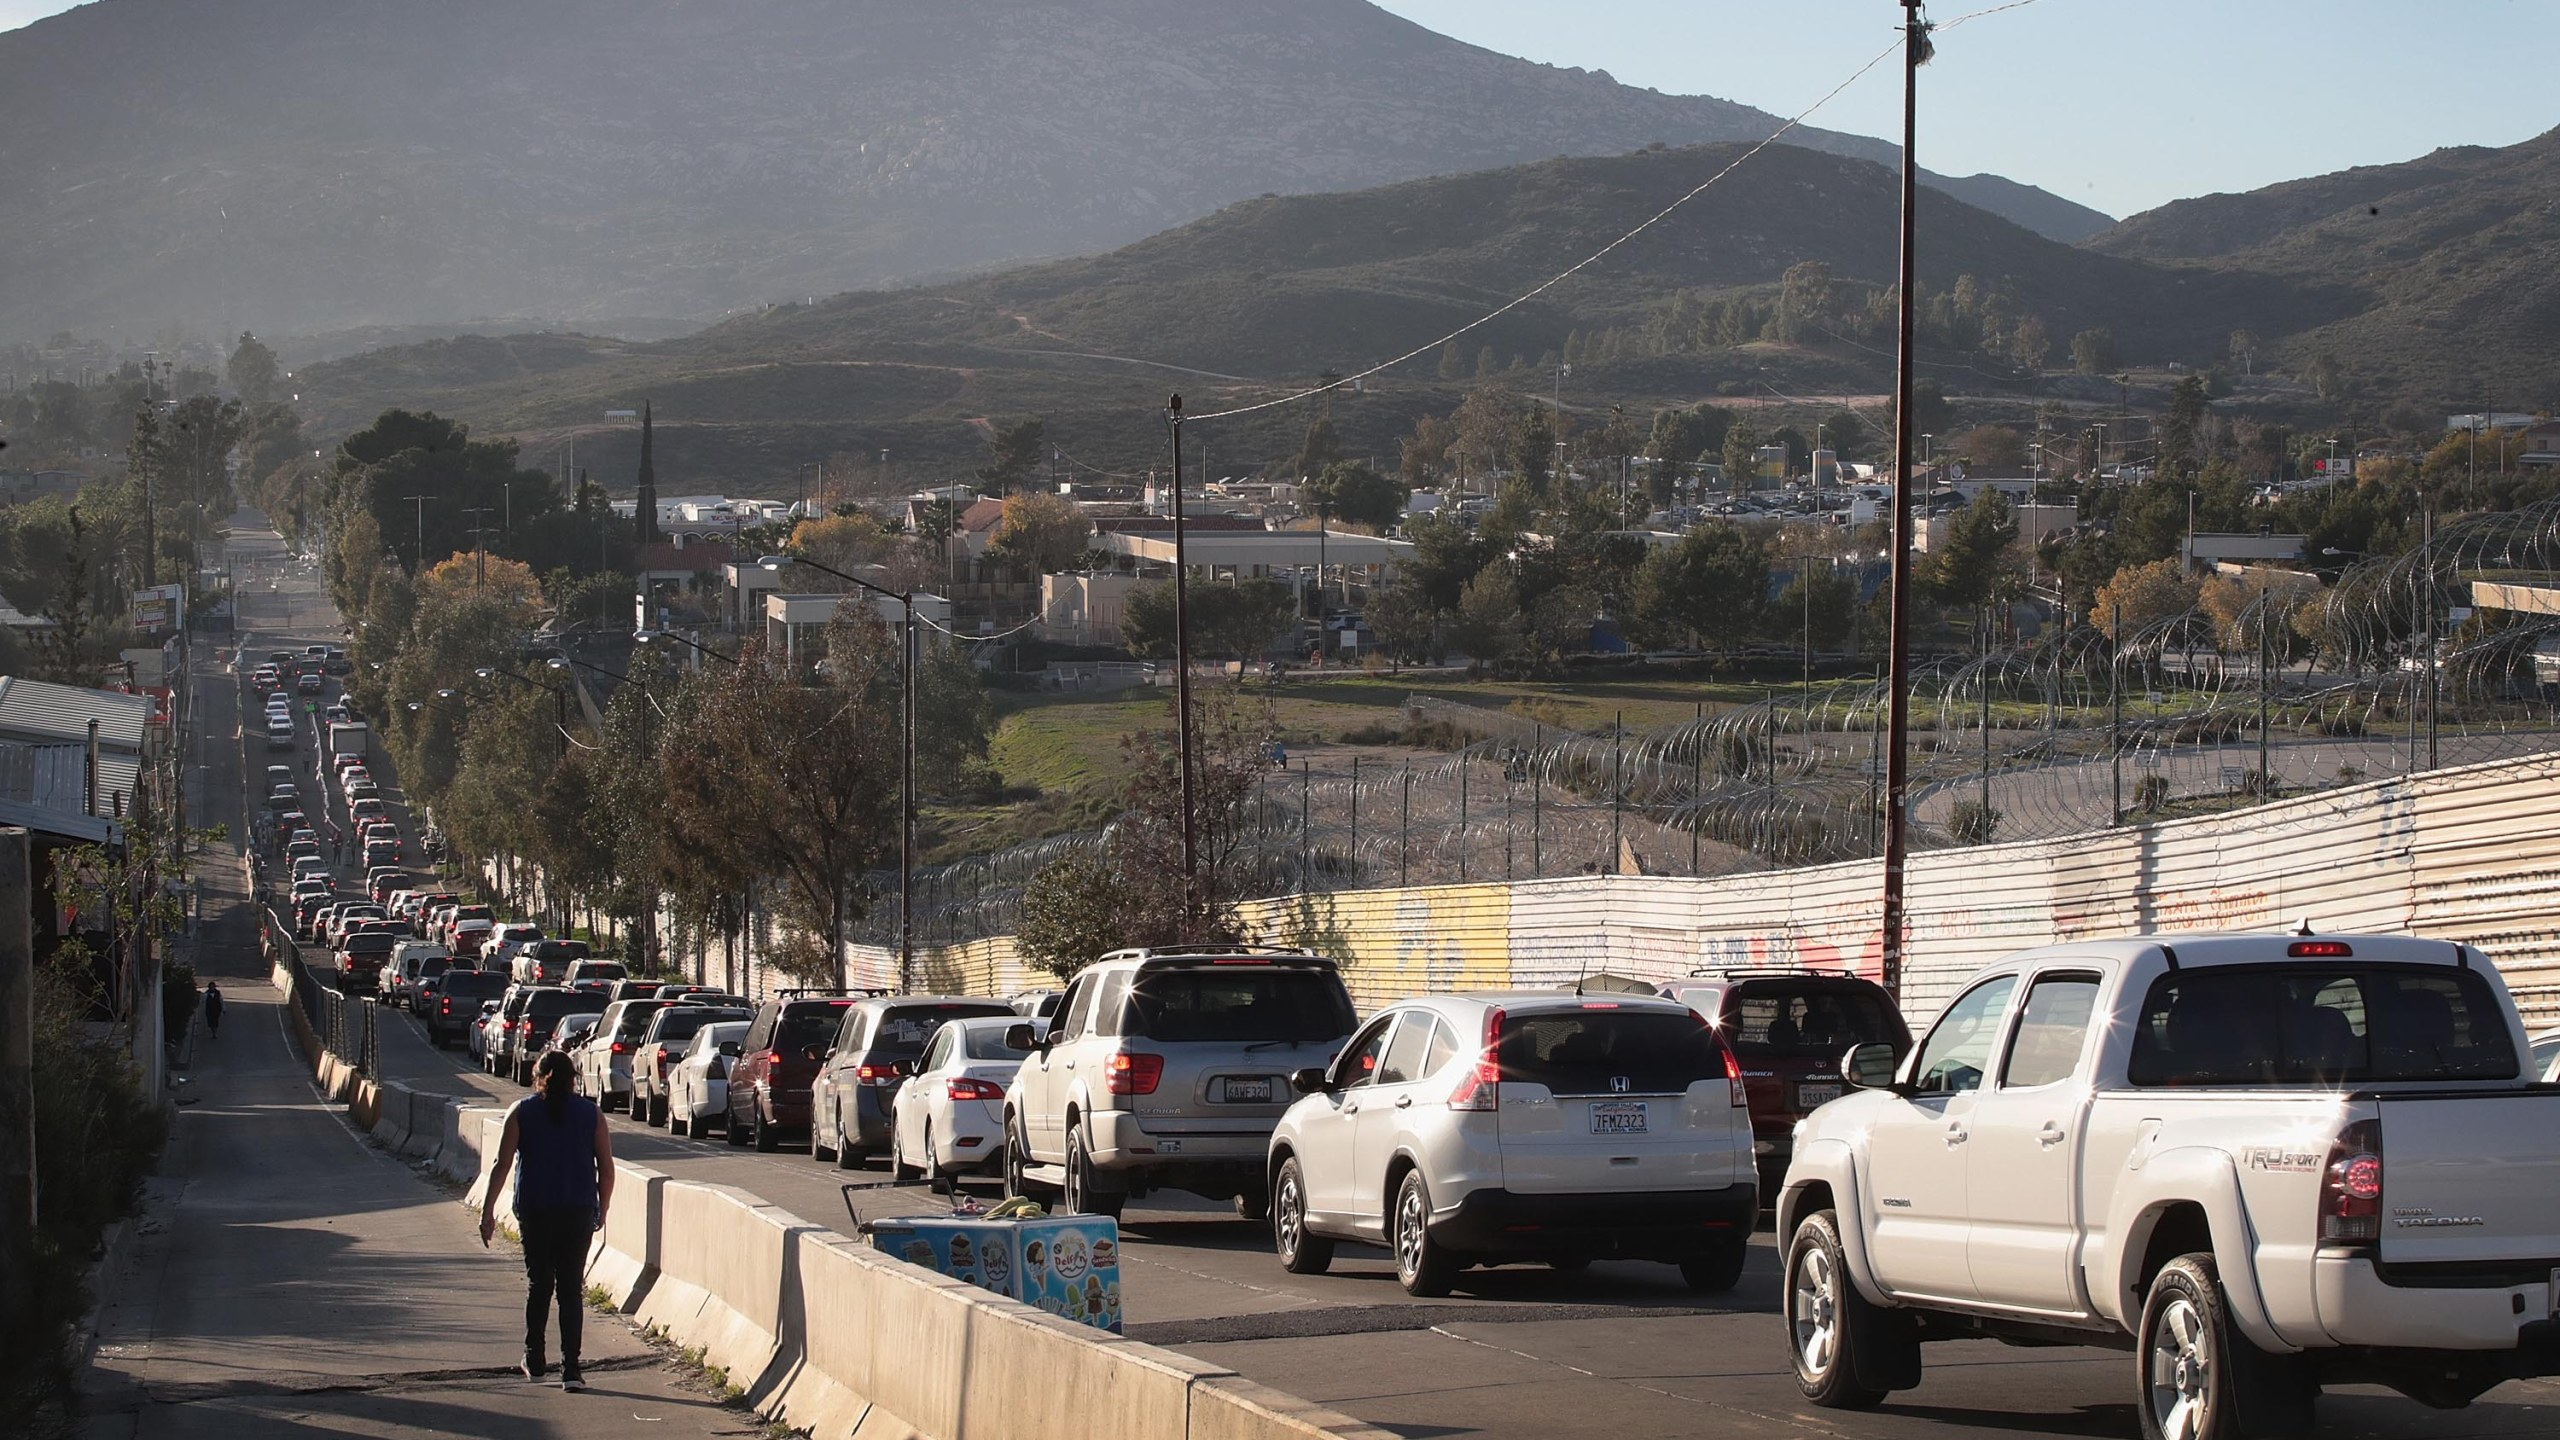 Motorists heading to the United States from Tecate, Mexico, wait along the U.S. border wall to pass through the port of entry on Jan. 27, 2019. (Credit: Scott Olson / Getty Images)